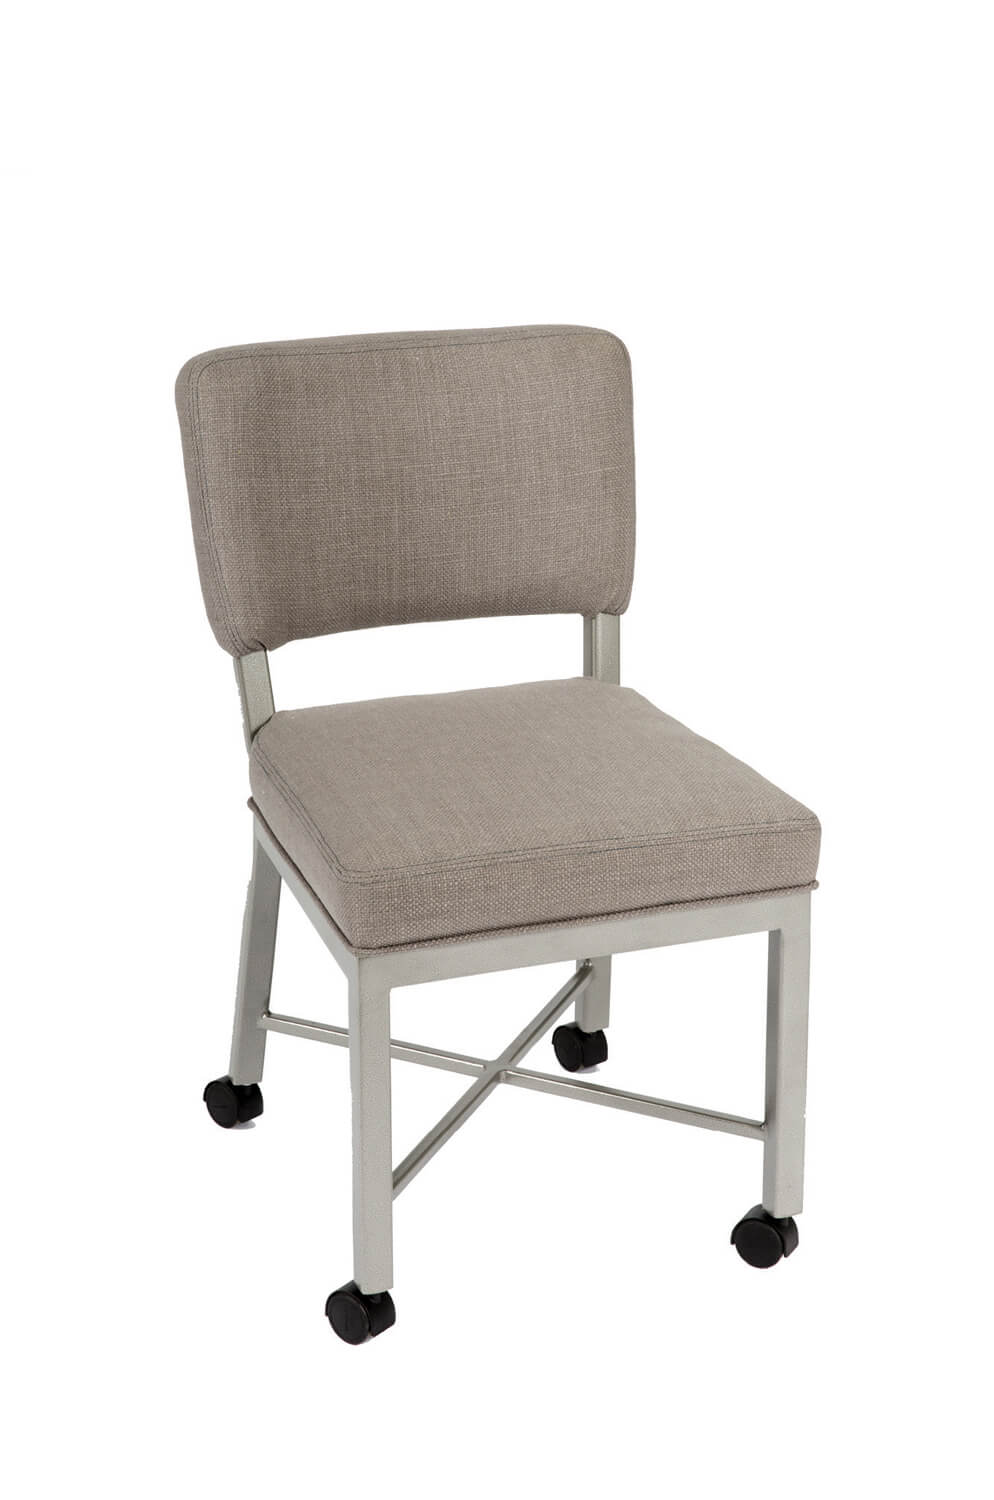 Miami Modern Upholstered Dining Chair with Casters